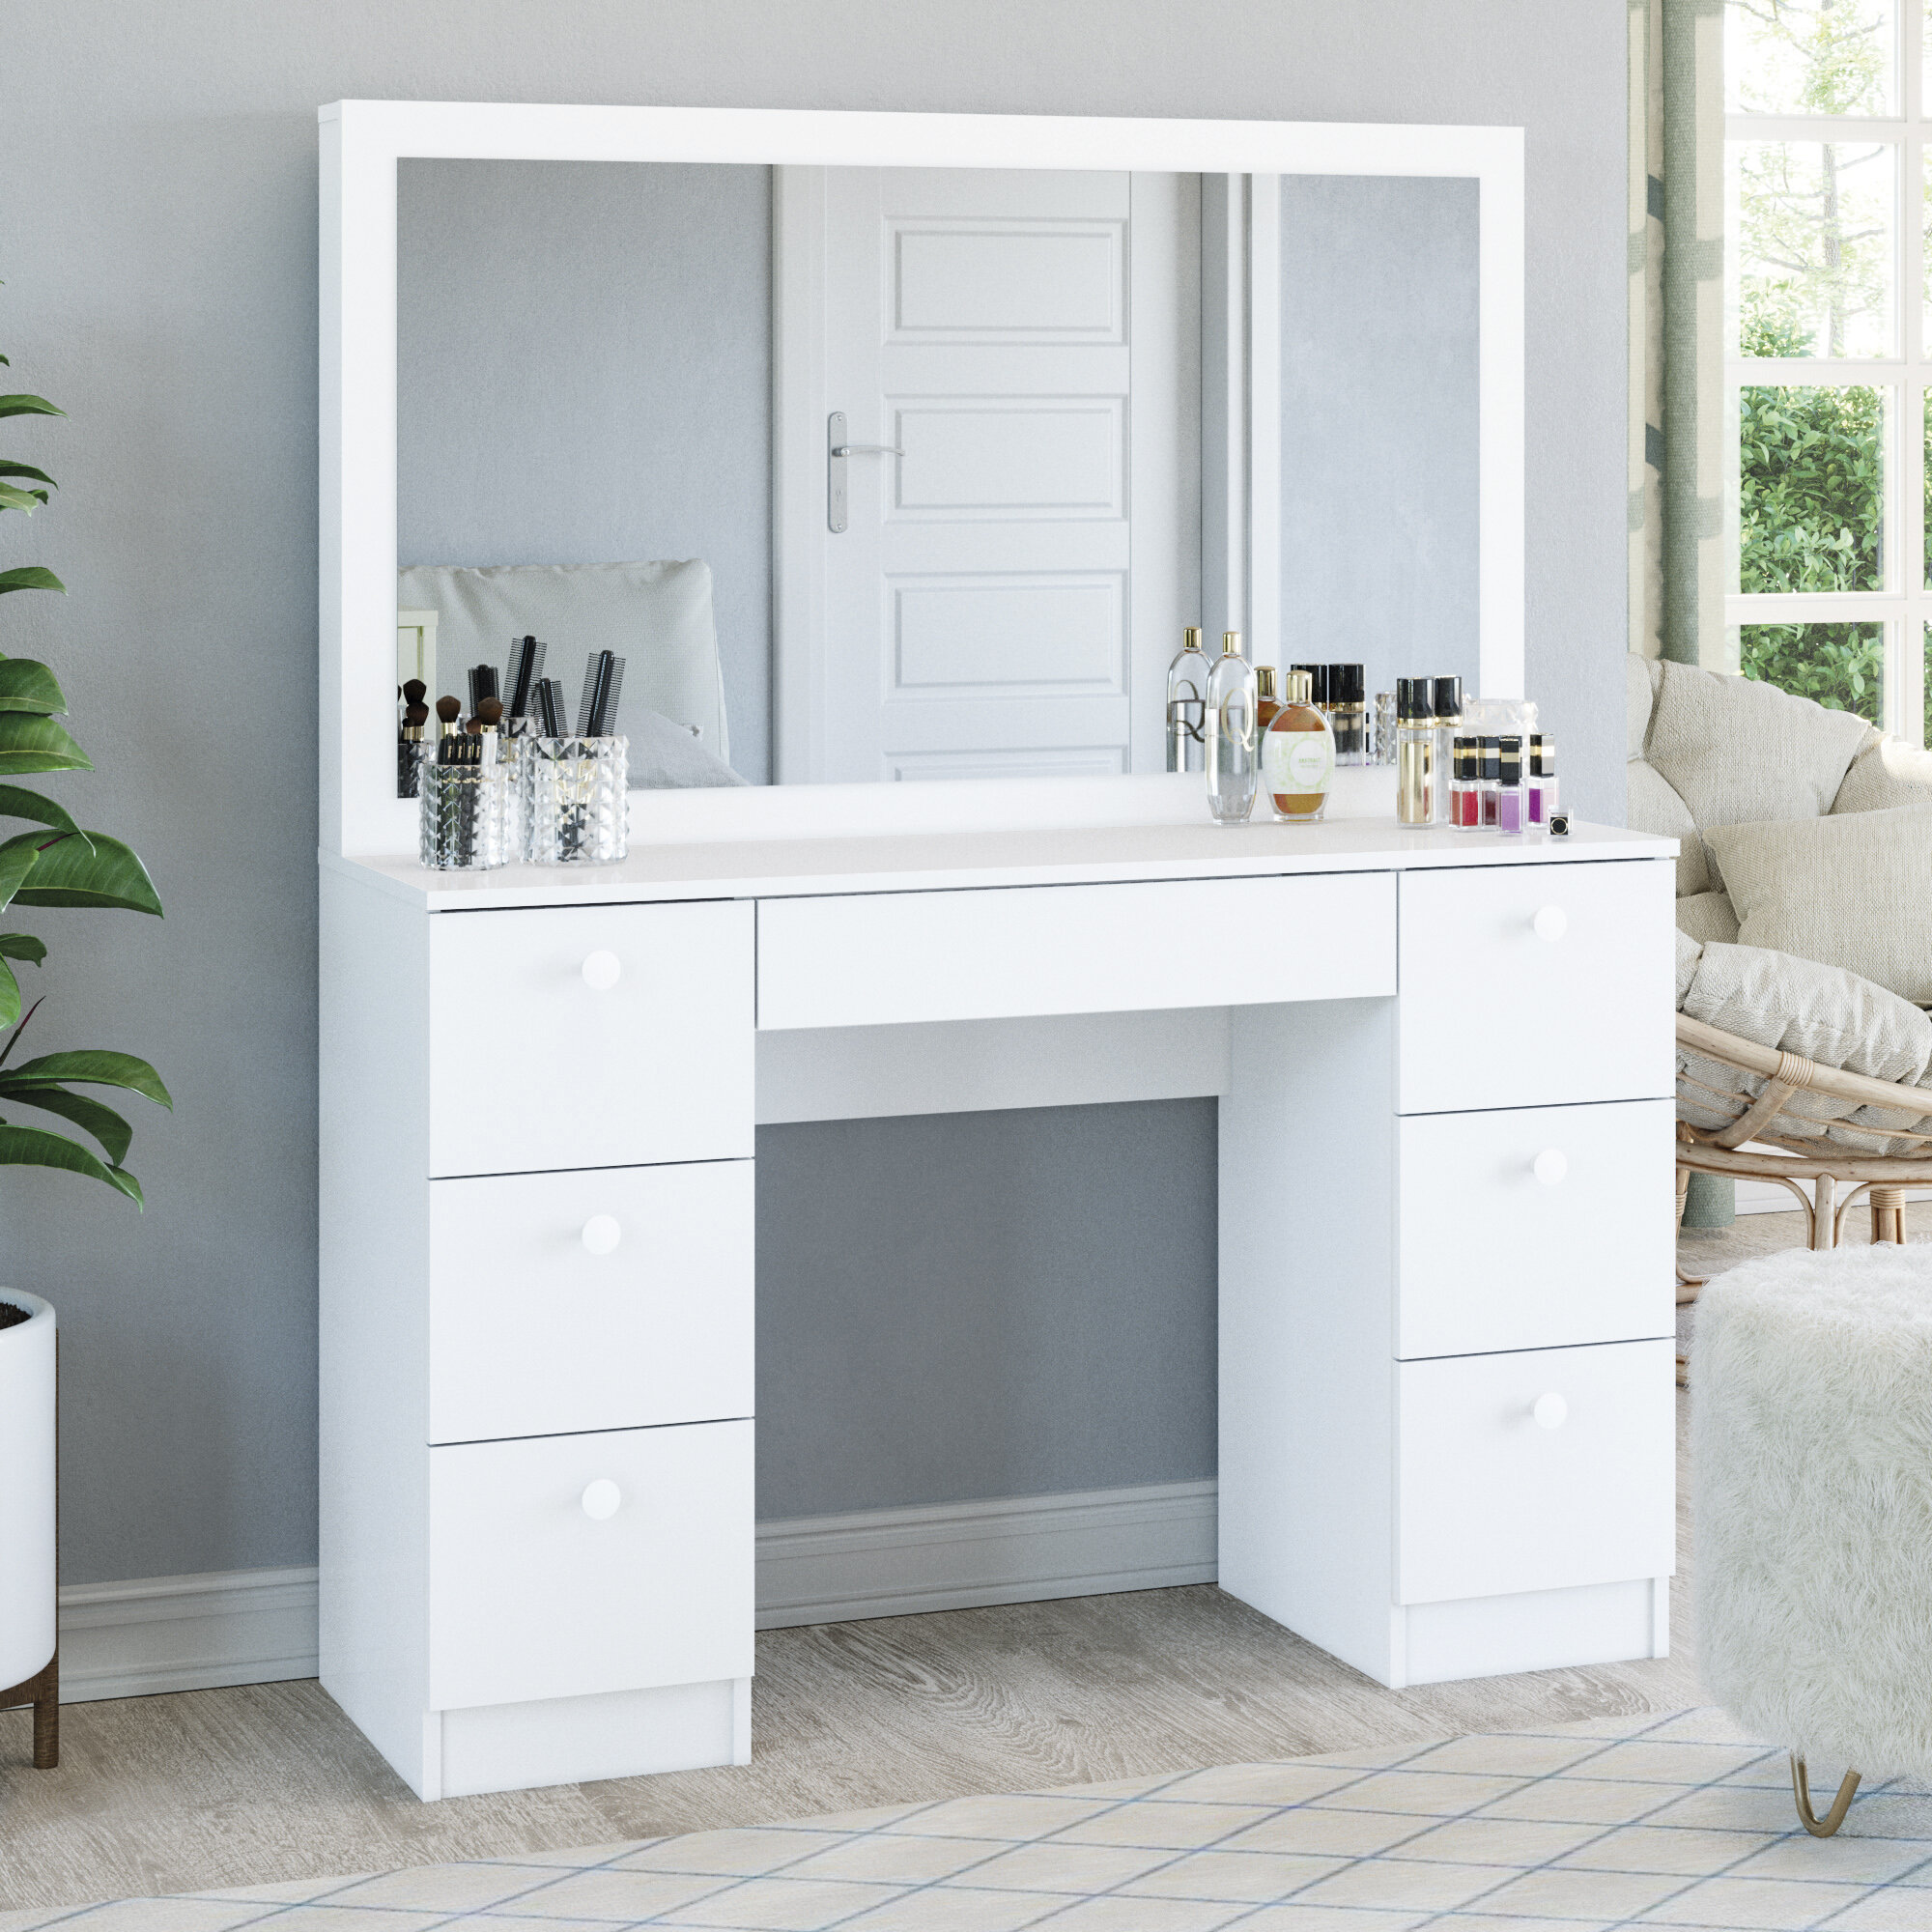 Ebern Designs Boahaus Artemisia Dressing Table Reviews Wayfair